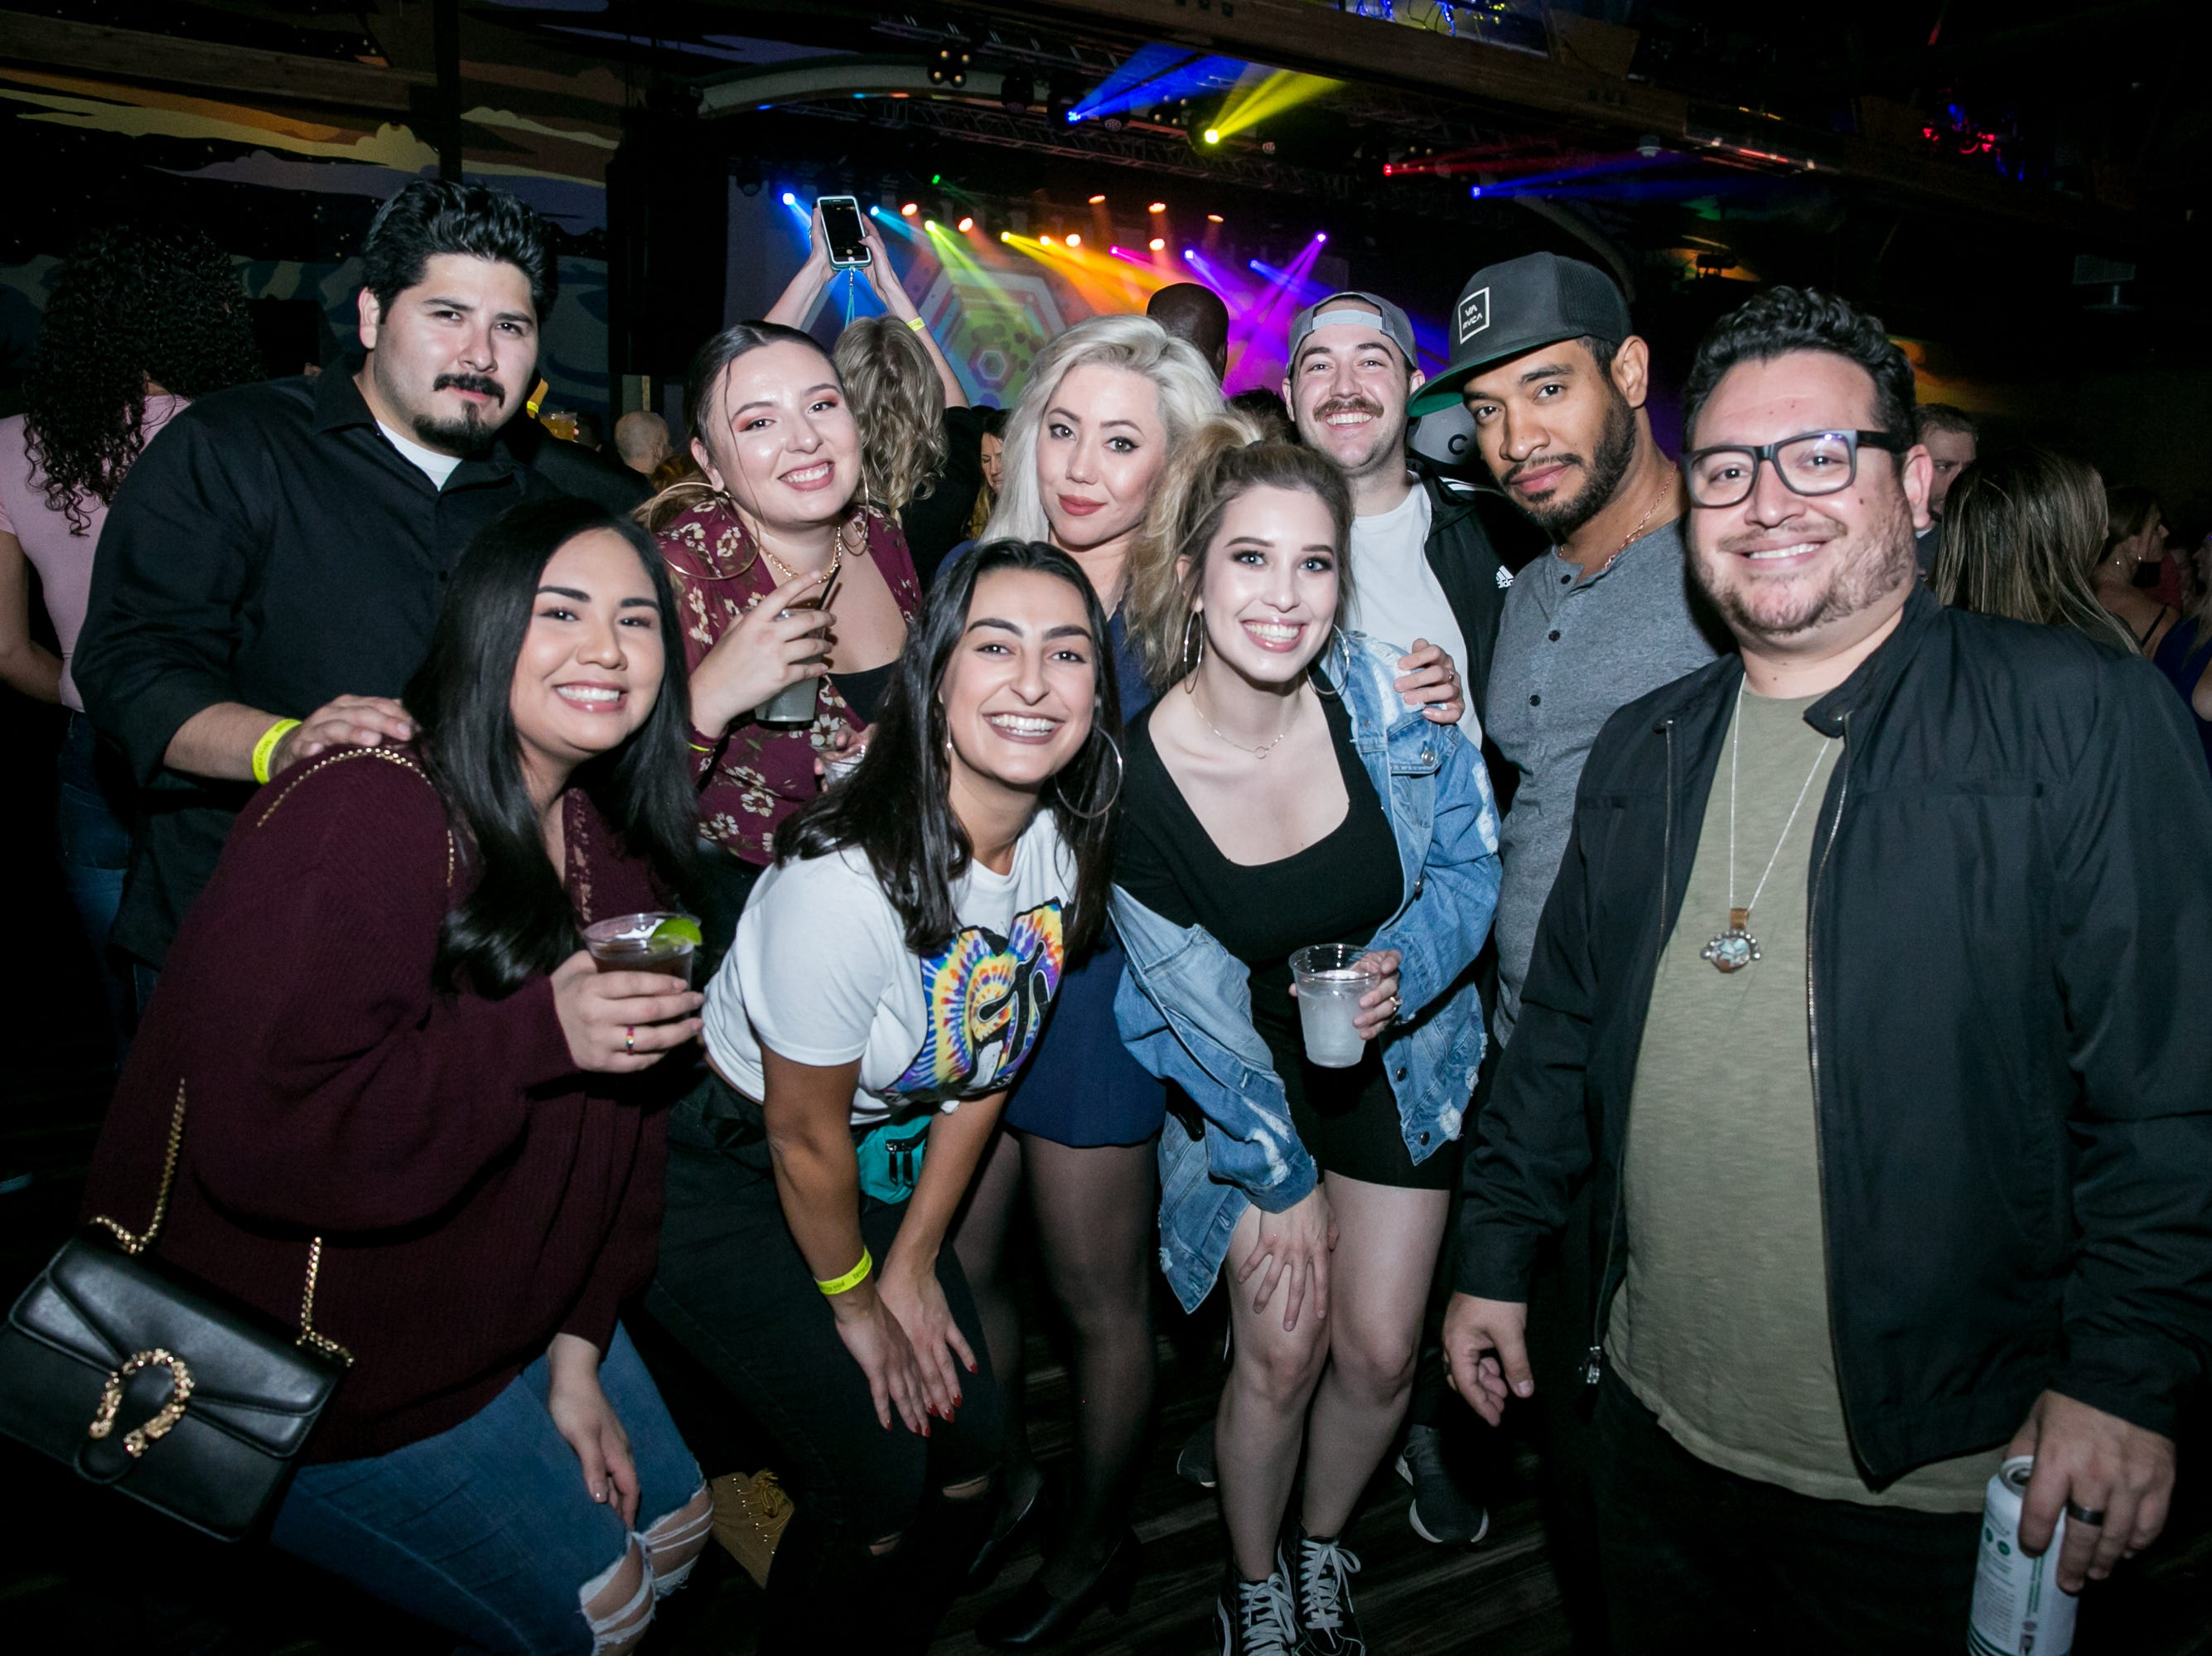 This group had an amazing time during Old School - 90's Hip Hop Dance Party at The Van Buren on Friday, November 30, 2018.